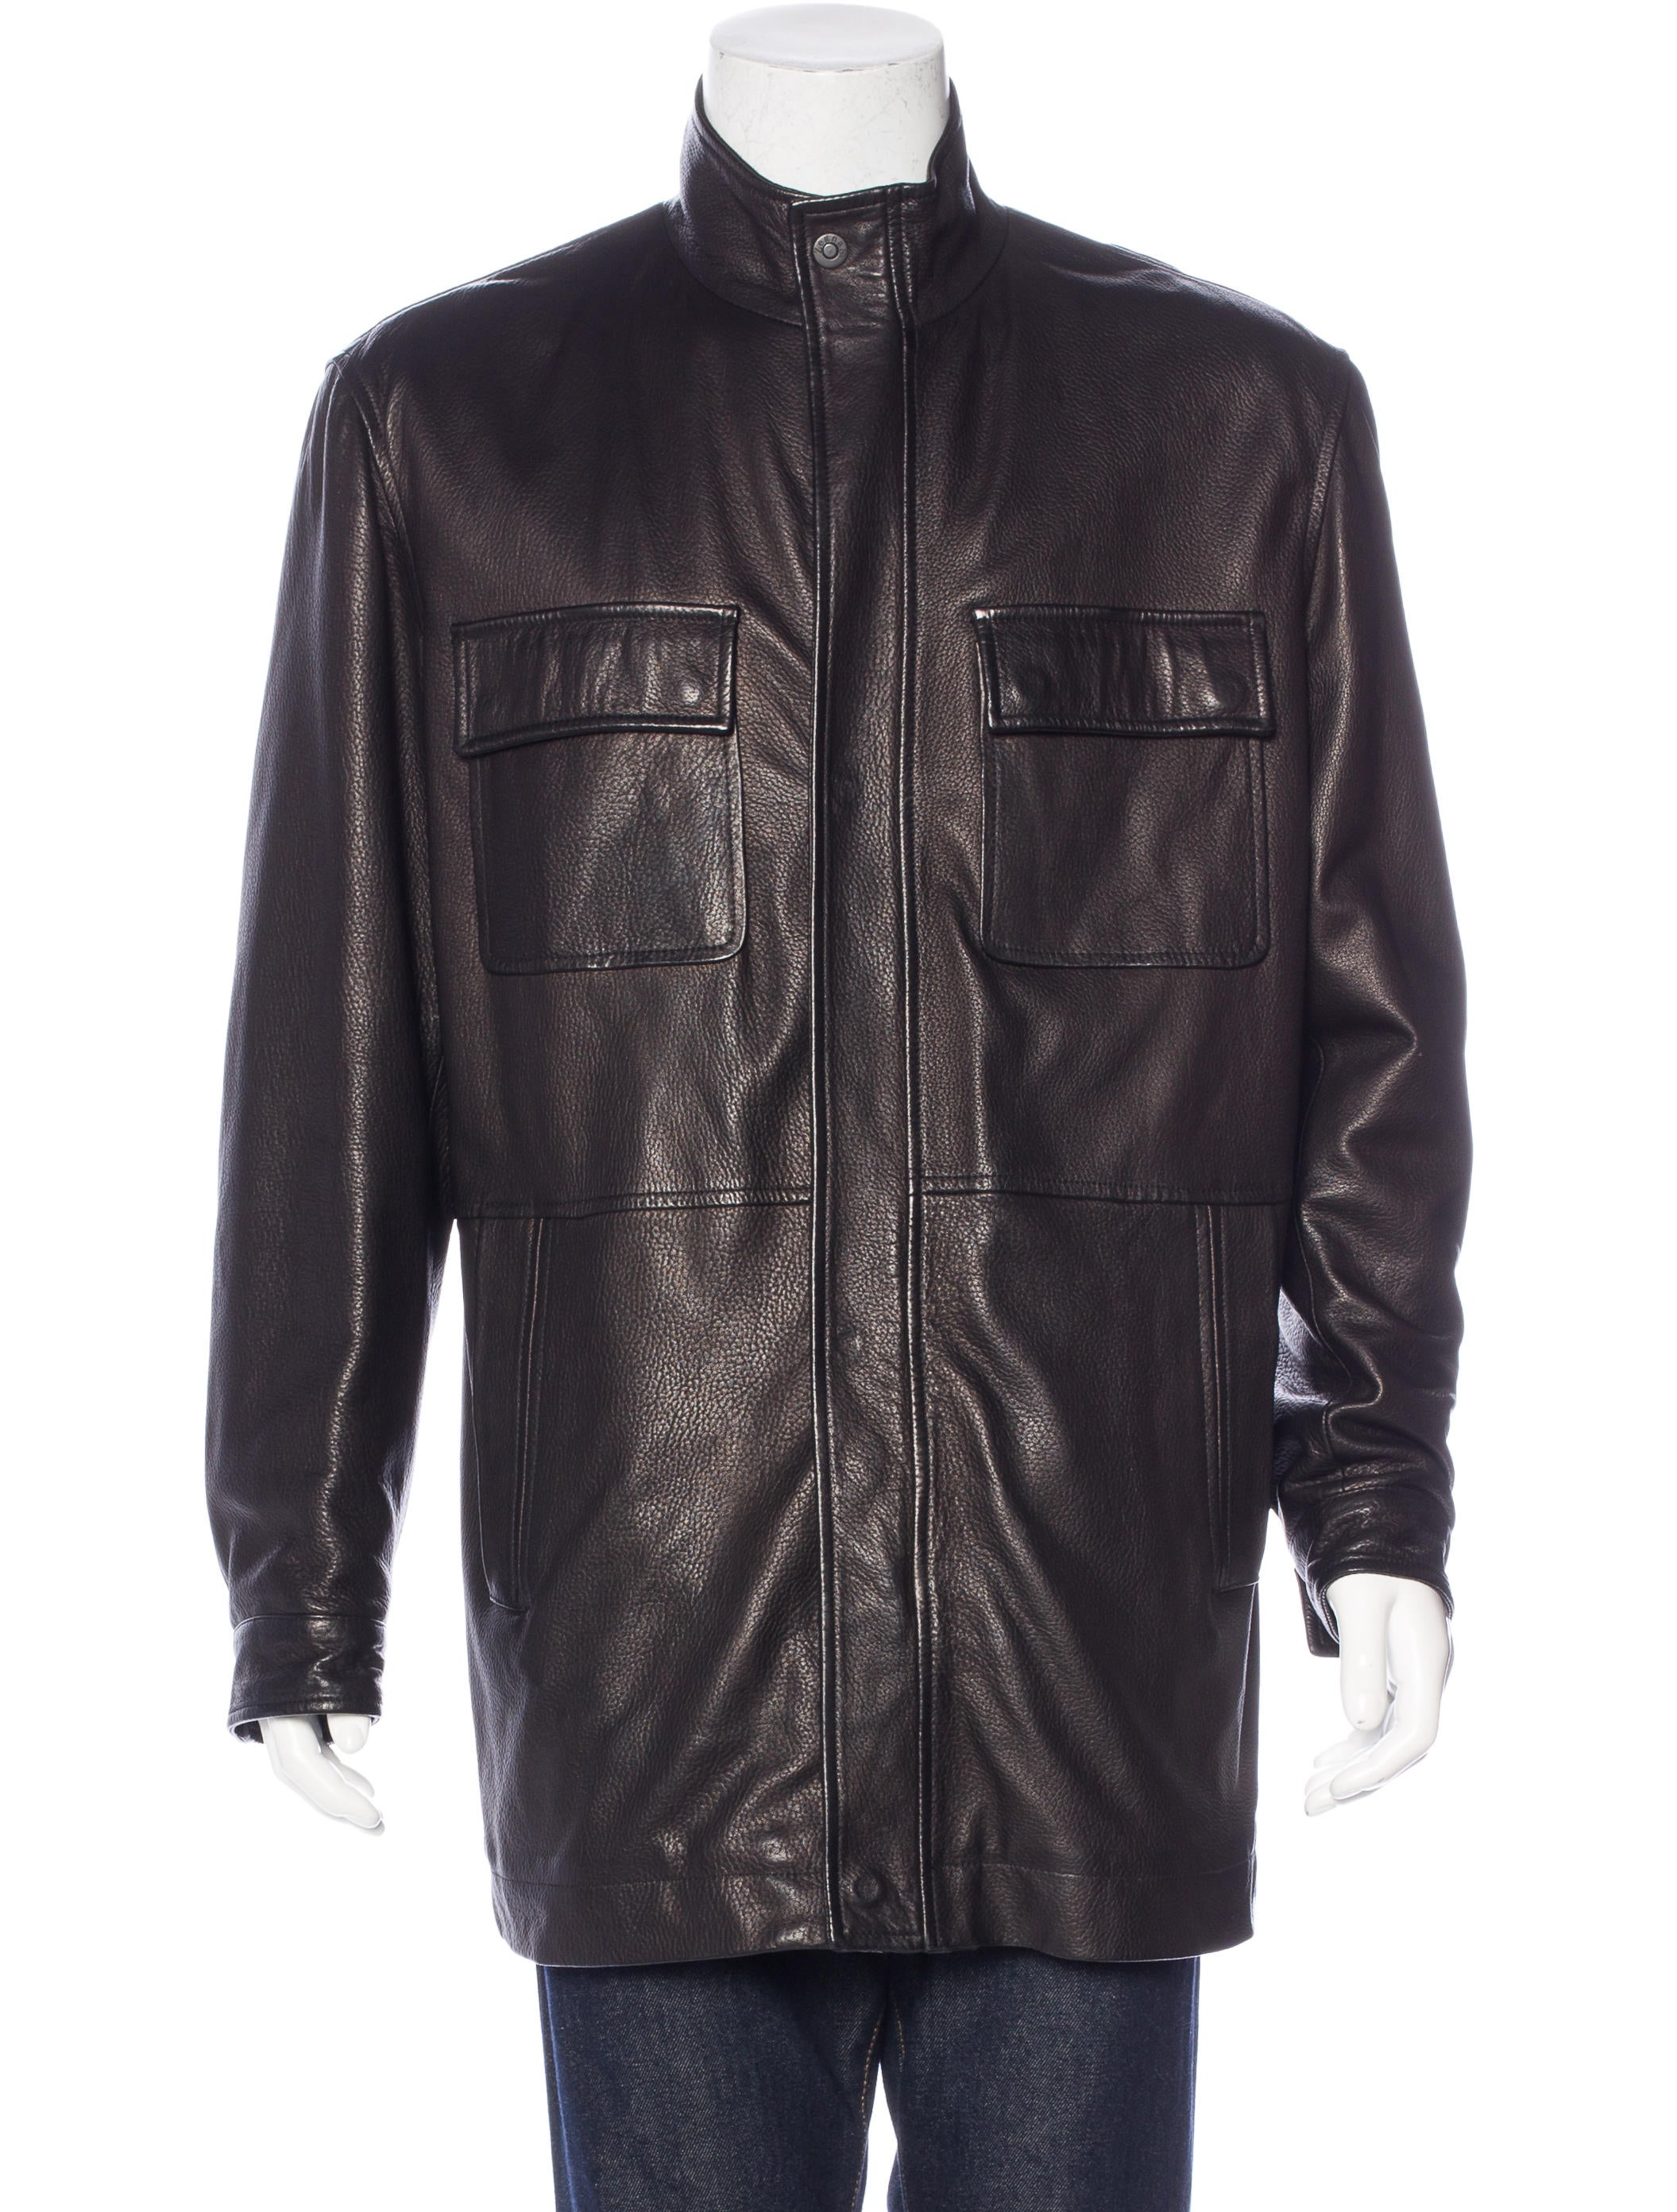 Any leather jacket can be repaired, restored, cleaned and cared for.